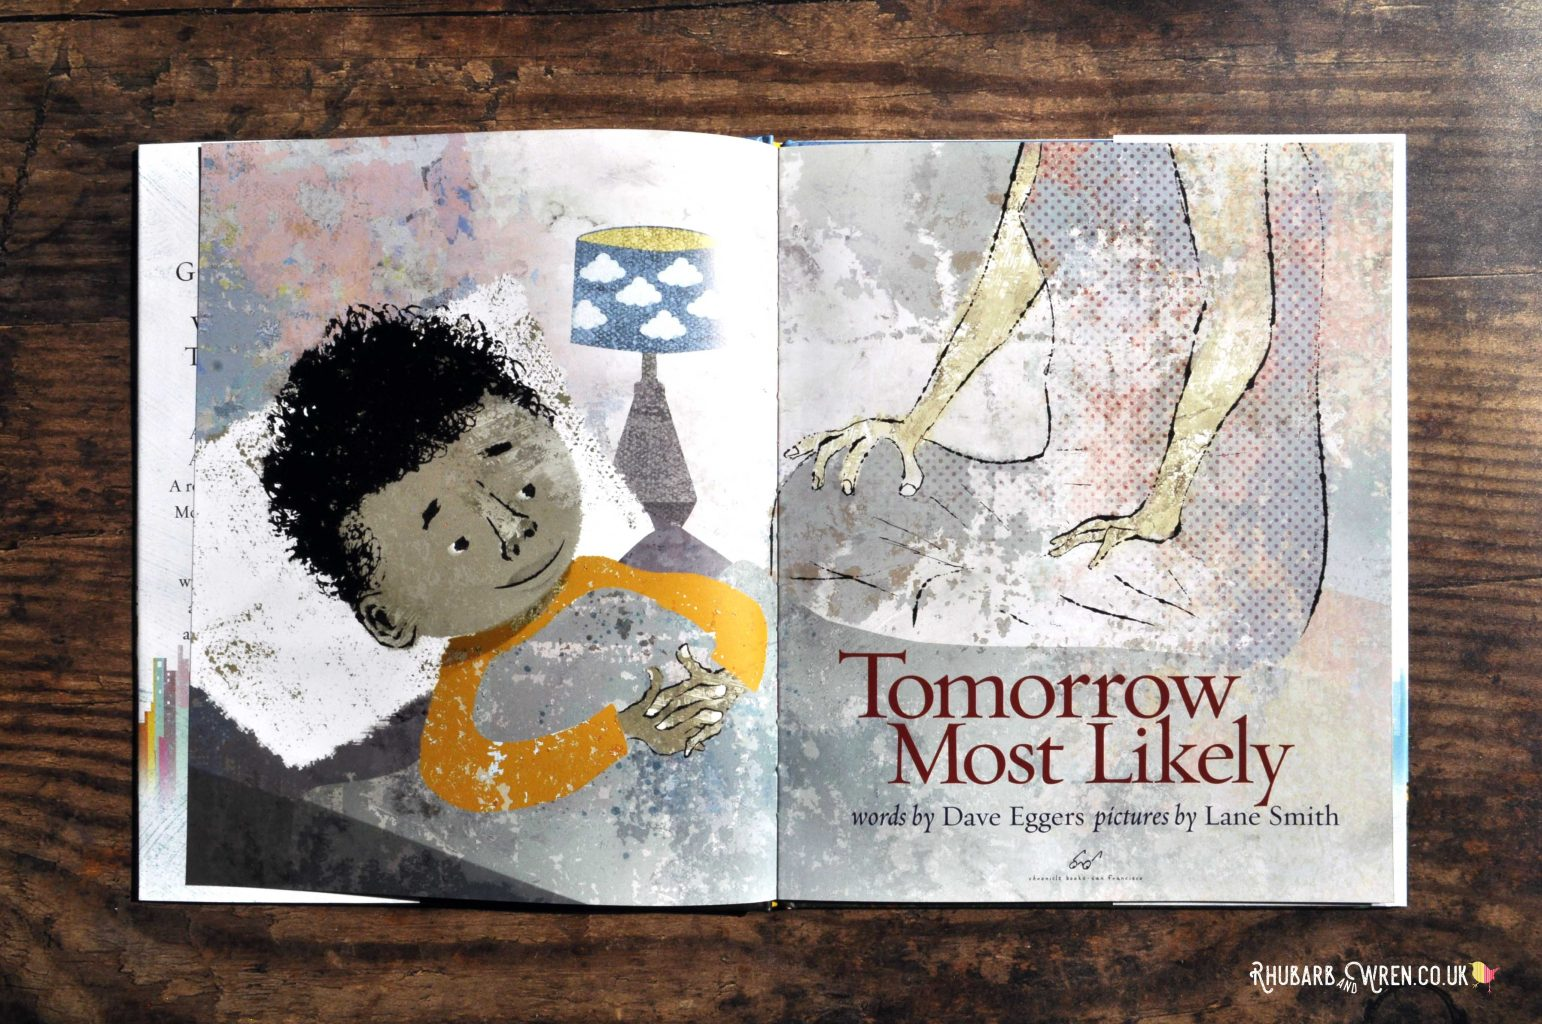 A page from the children's picture book 'Tomorrow Most Likely' by Dave Eggers and Lane Smith.